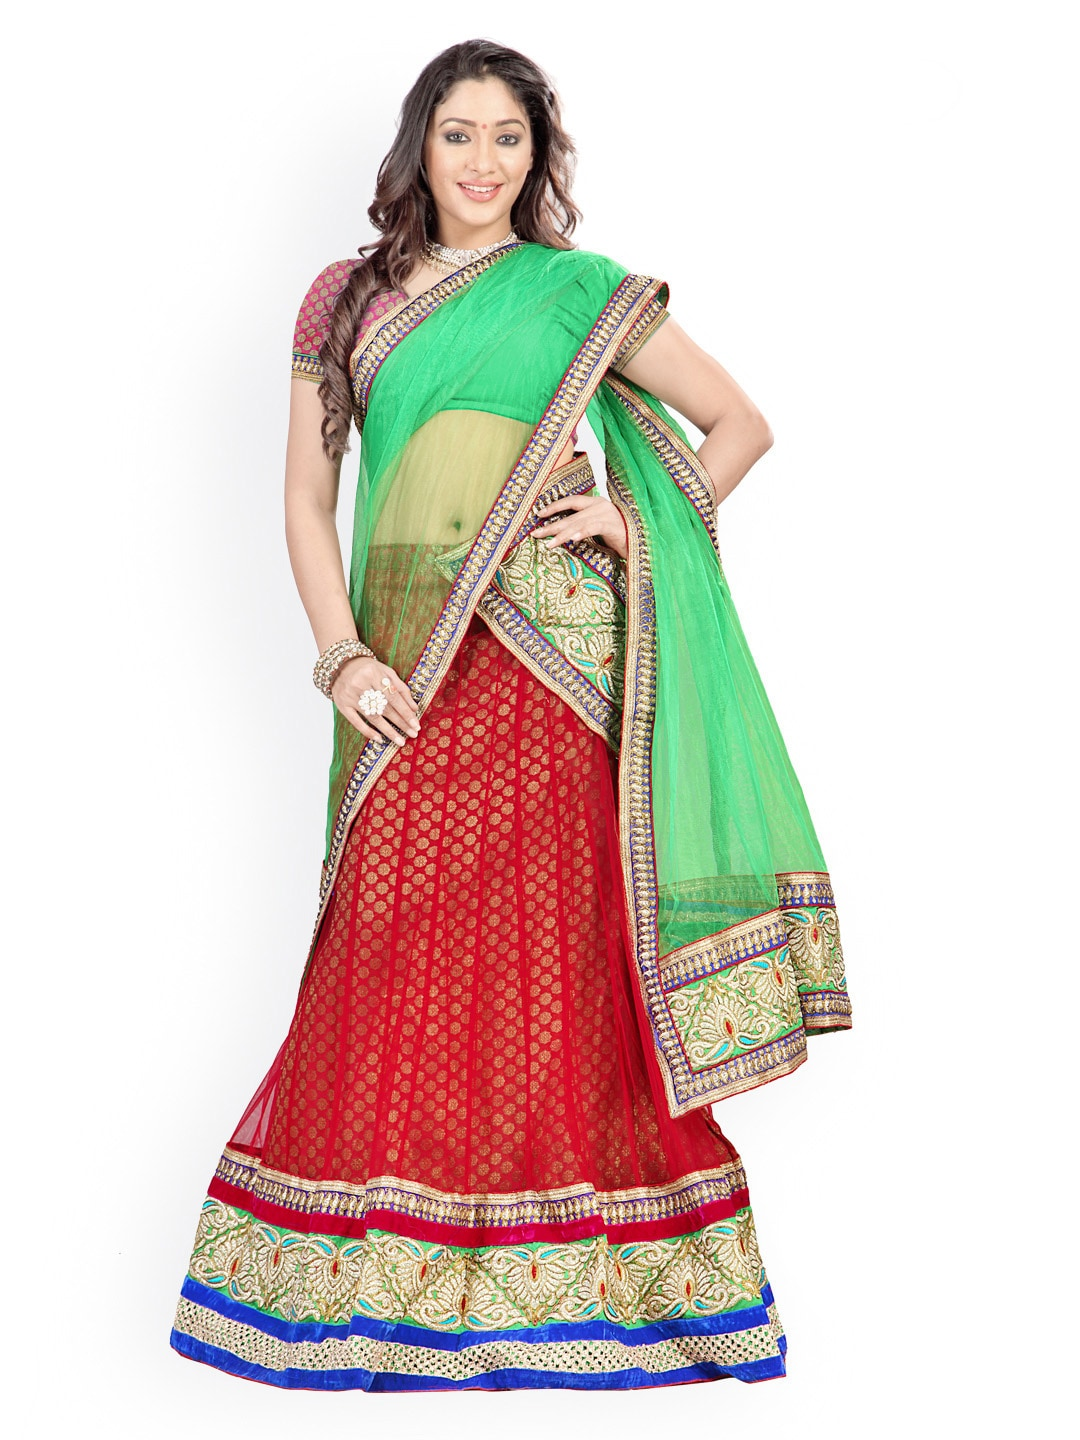 Florence Red & Pink Semi-Stitched Brasso Net Lehenga Choli with Dupatta